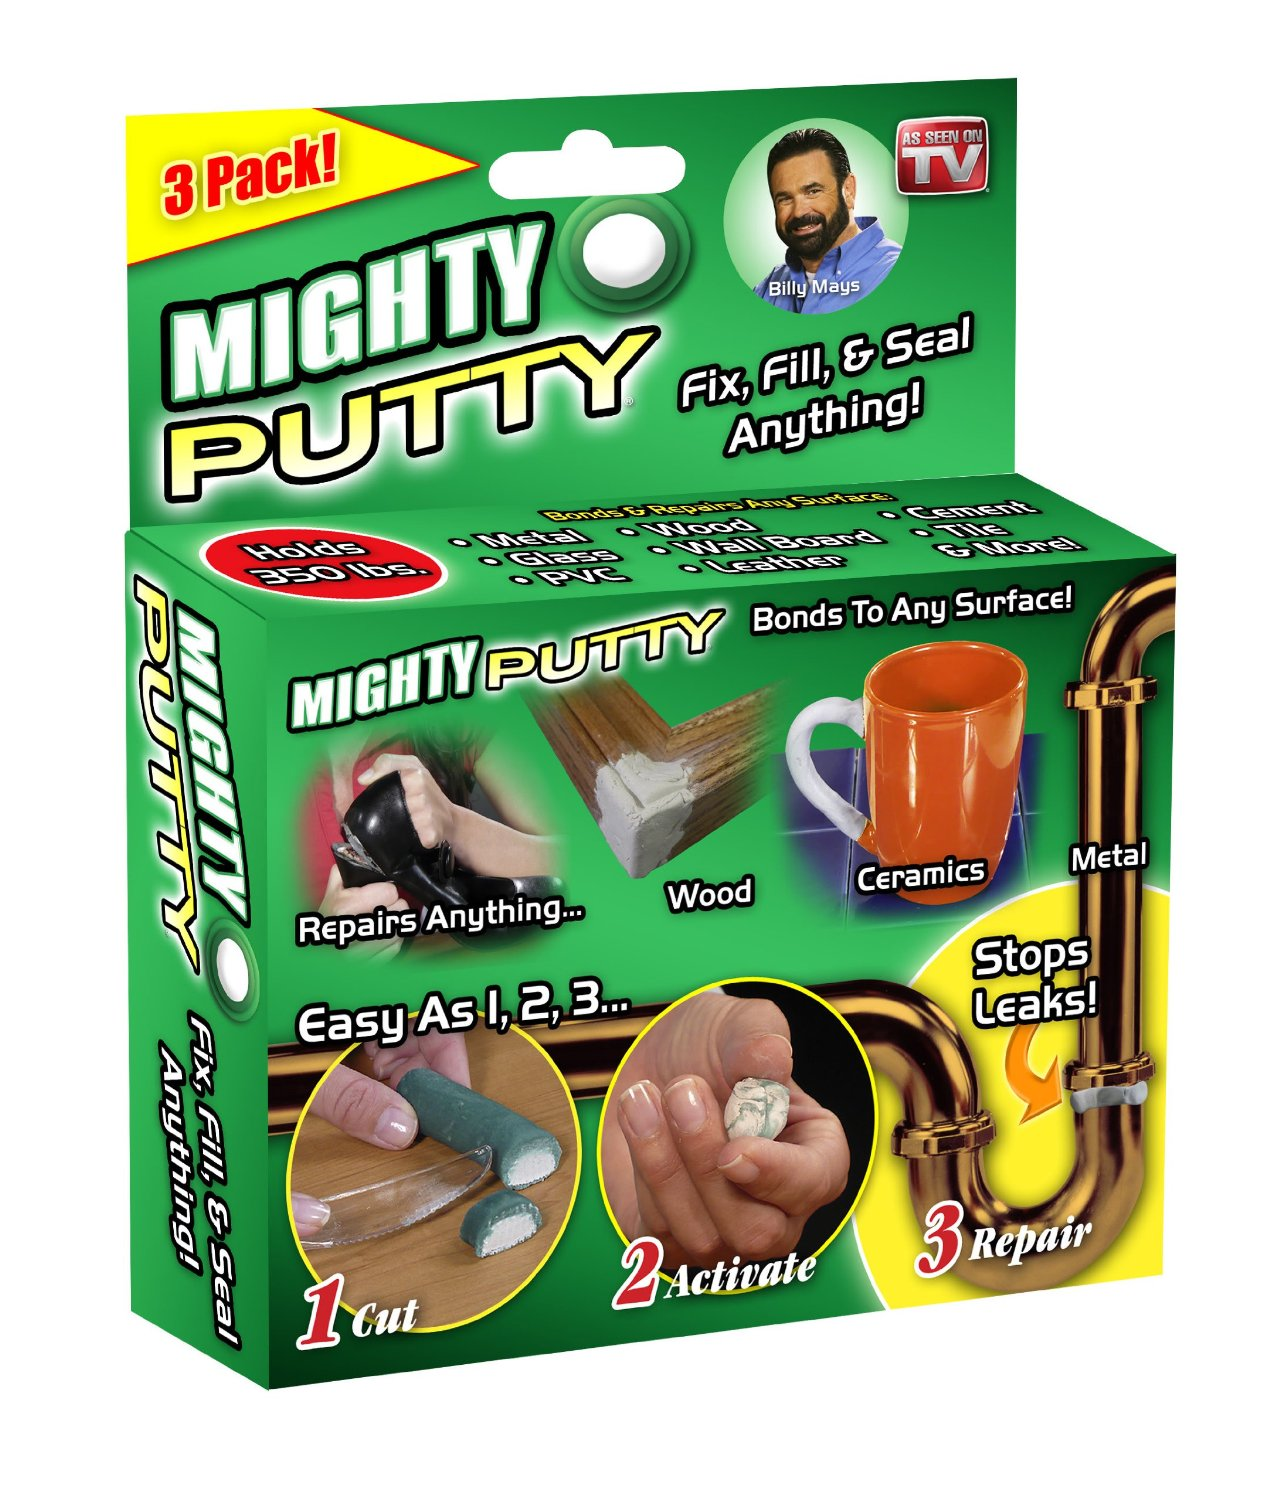 keo-sap-dan-da-nang-mighty-putty